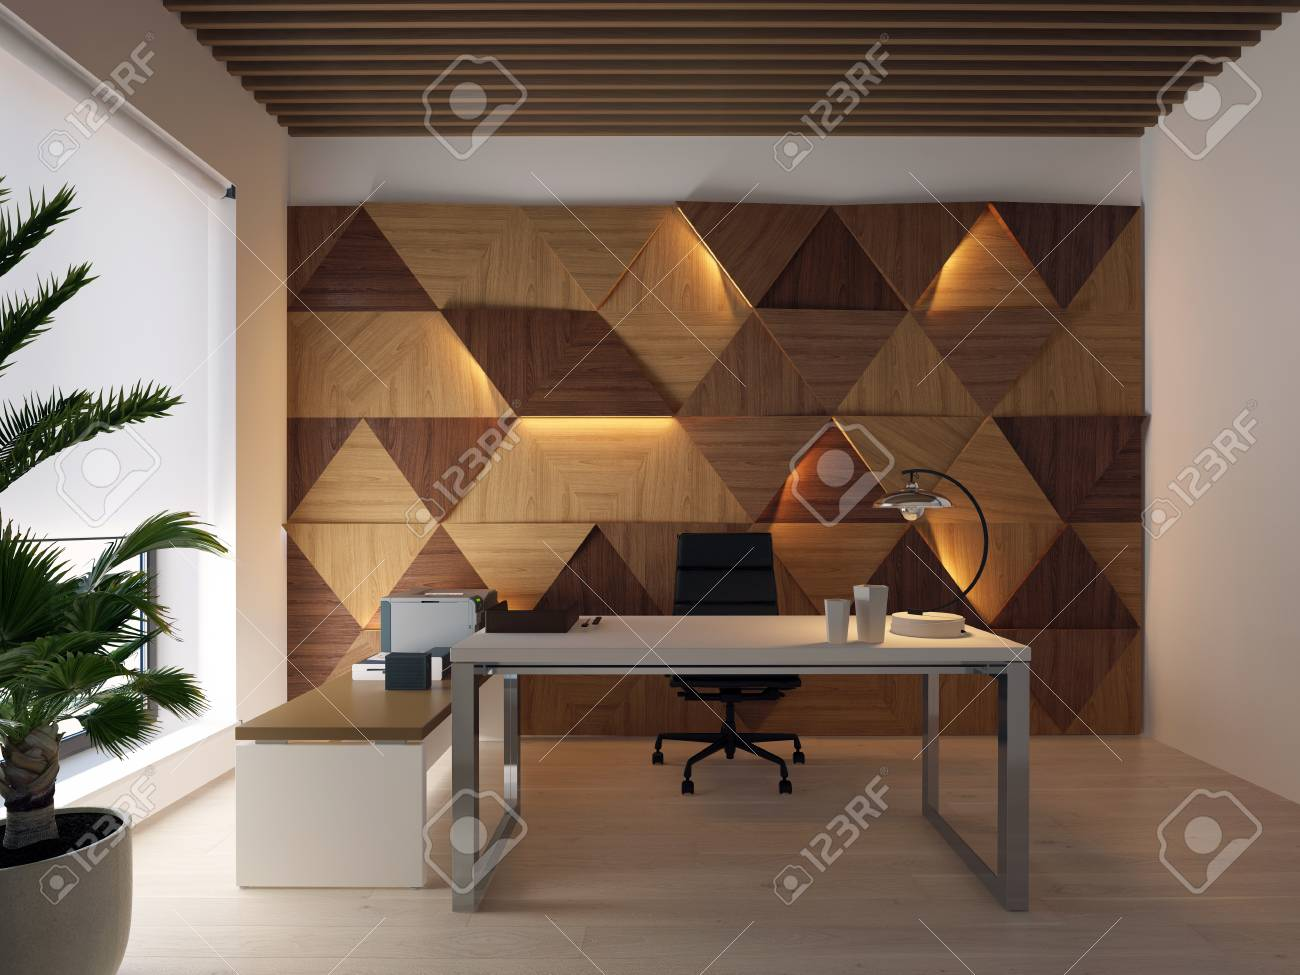 3d Rendering Wood Wall Panels On The Wall And Desktop Stock Photo Picture And Royalty Free Image Image 116775864